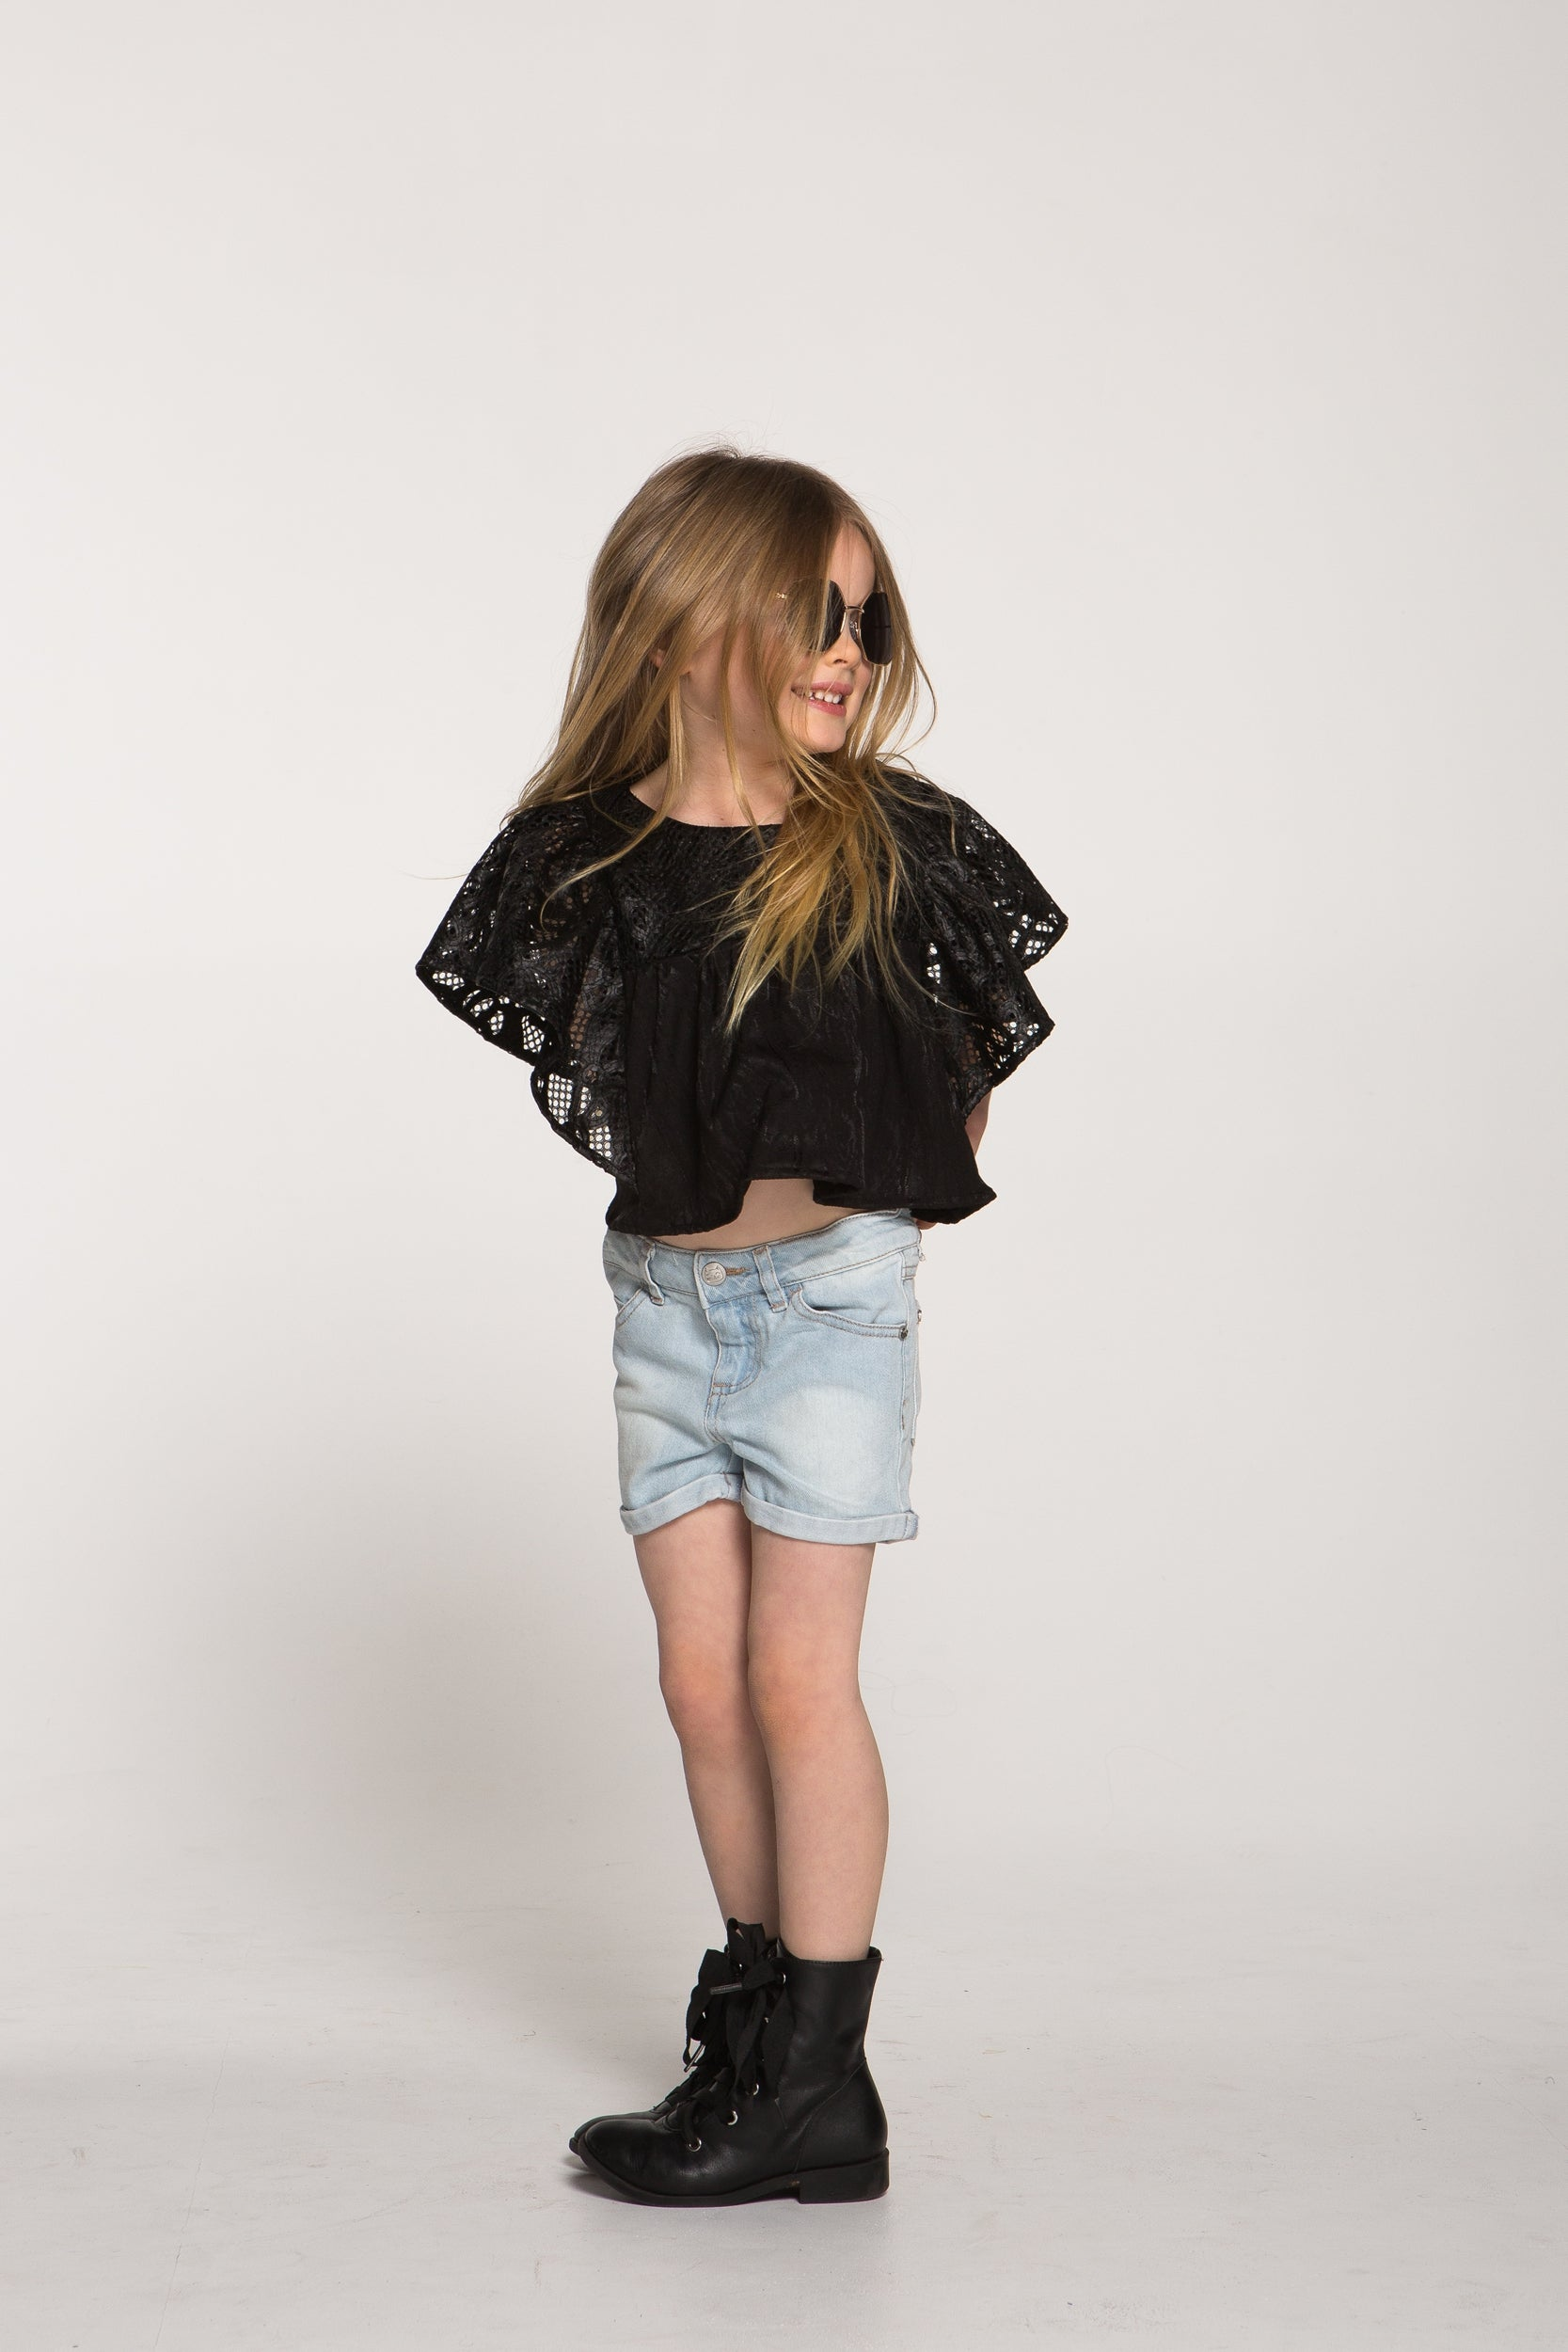 Girls Black Laser Cut Leather Top